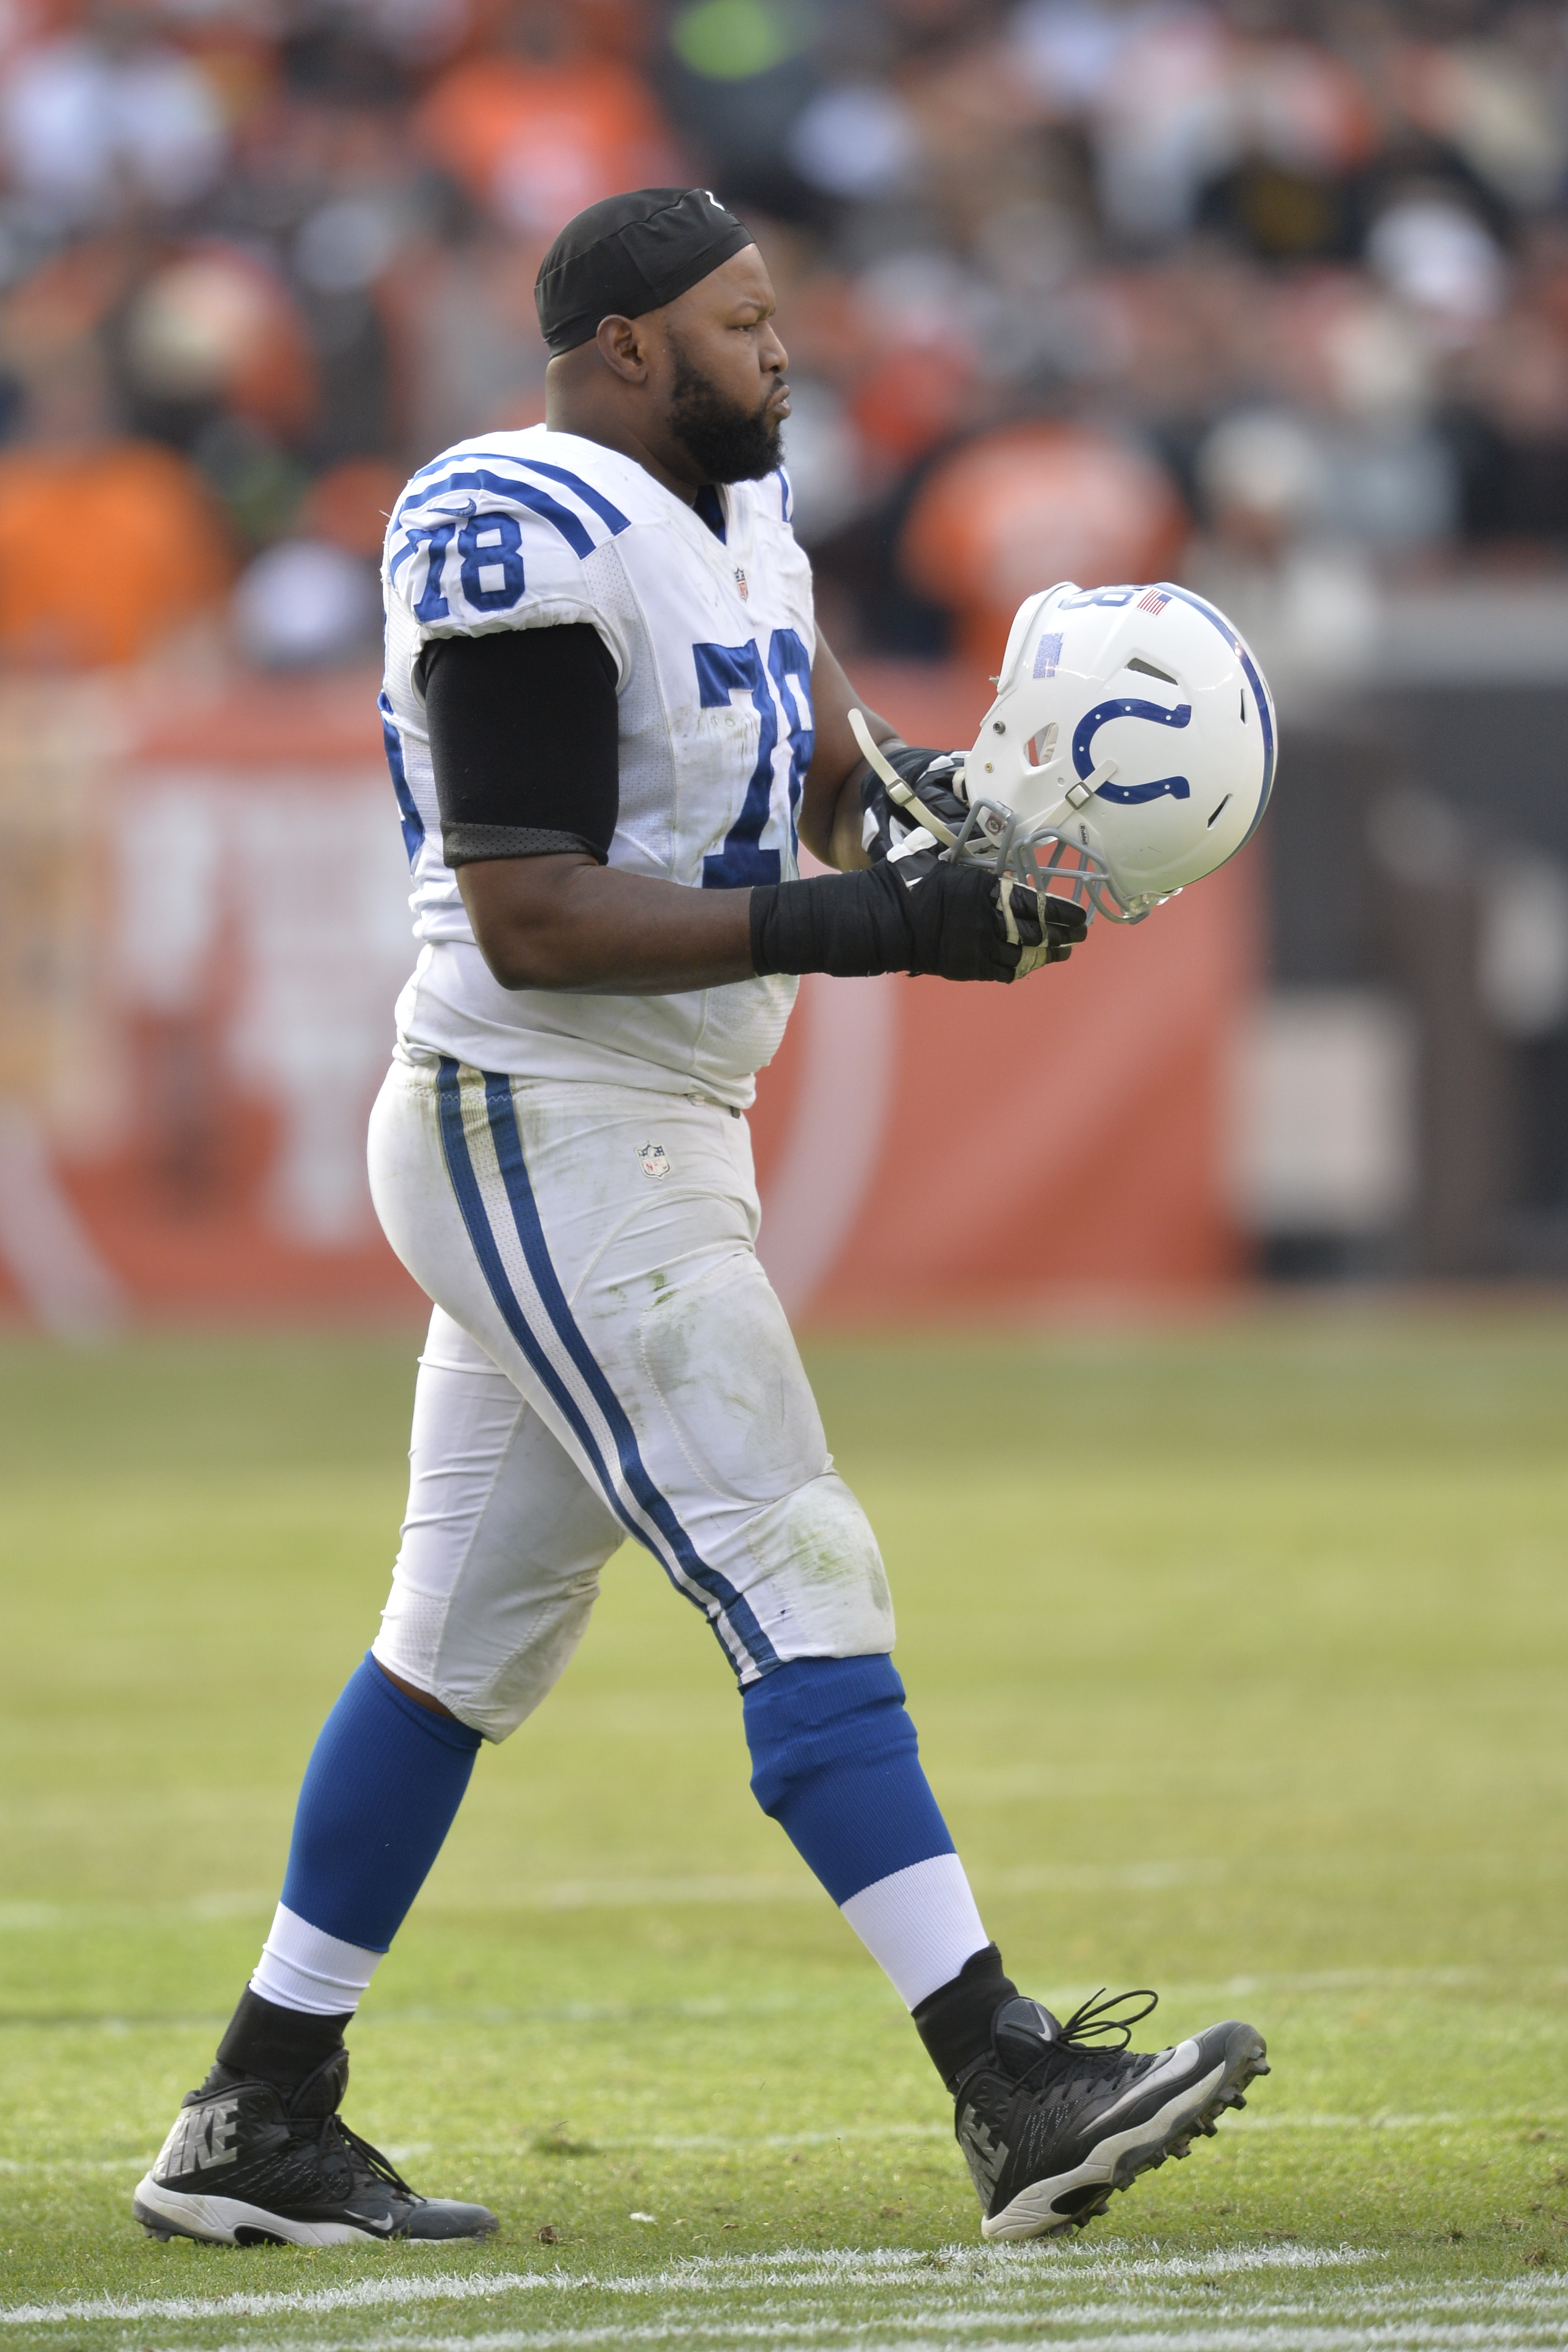 Indianapolis Colts tackle Gosder Cherilus walks on the field against the Cleveland Browns during an NFL football game Sunday, Dec. 7, 2014, in Cleveland. The Colts won 25-24. (AP Photo/David Richard)